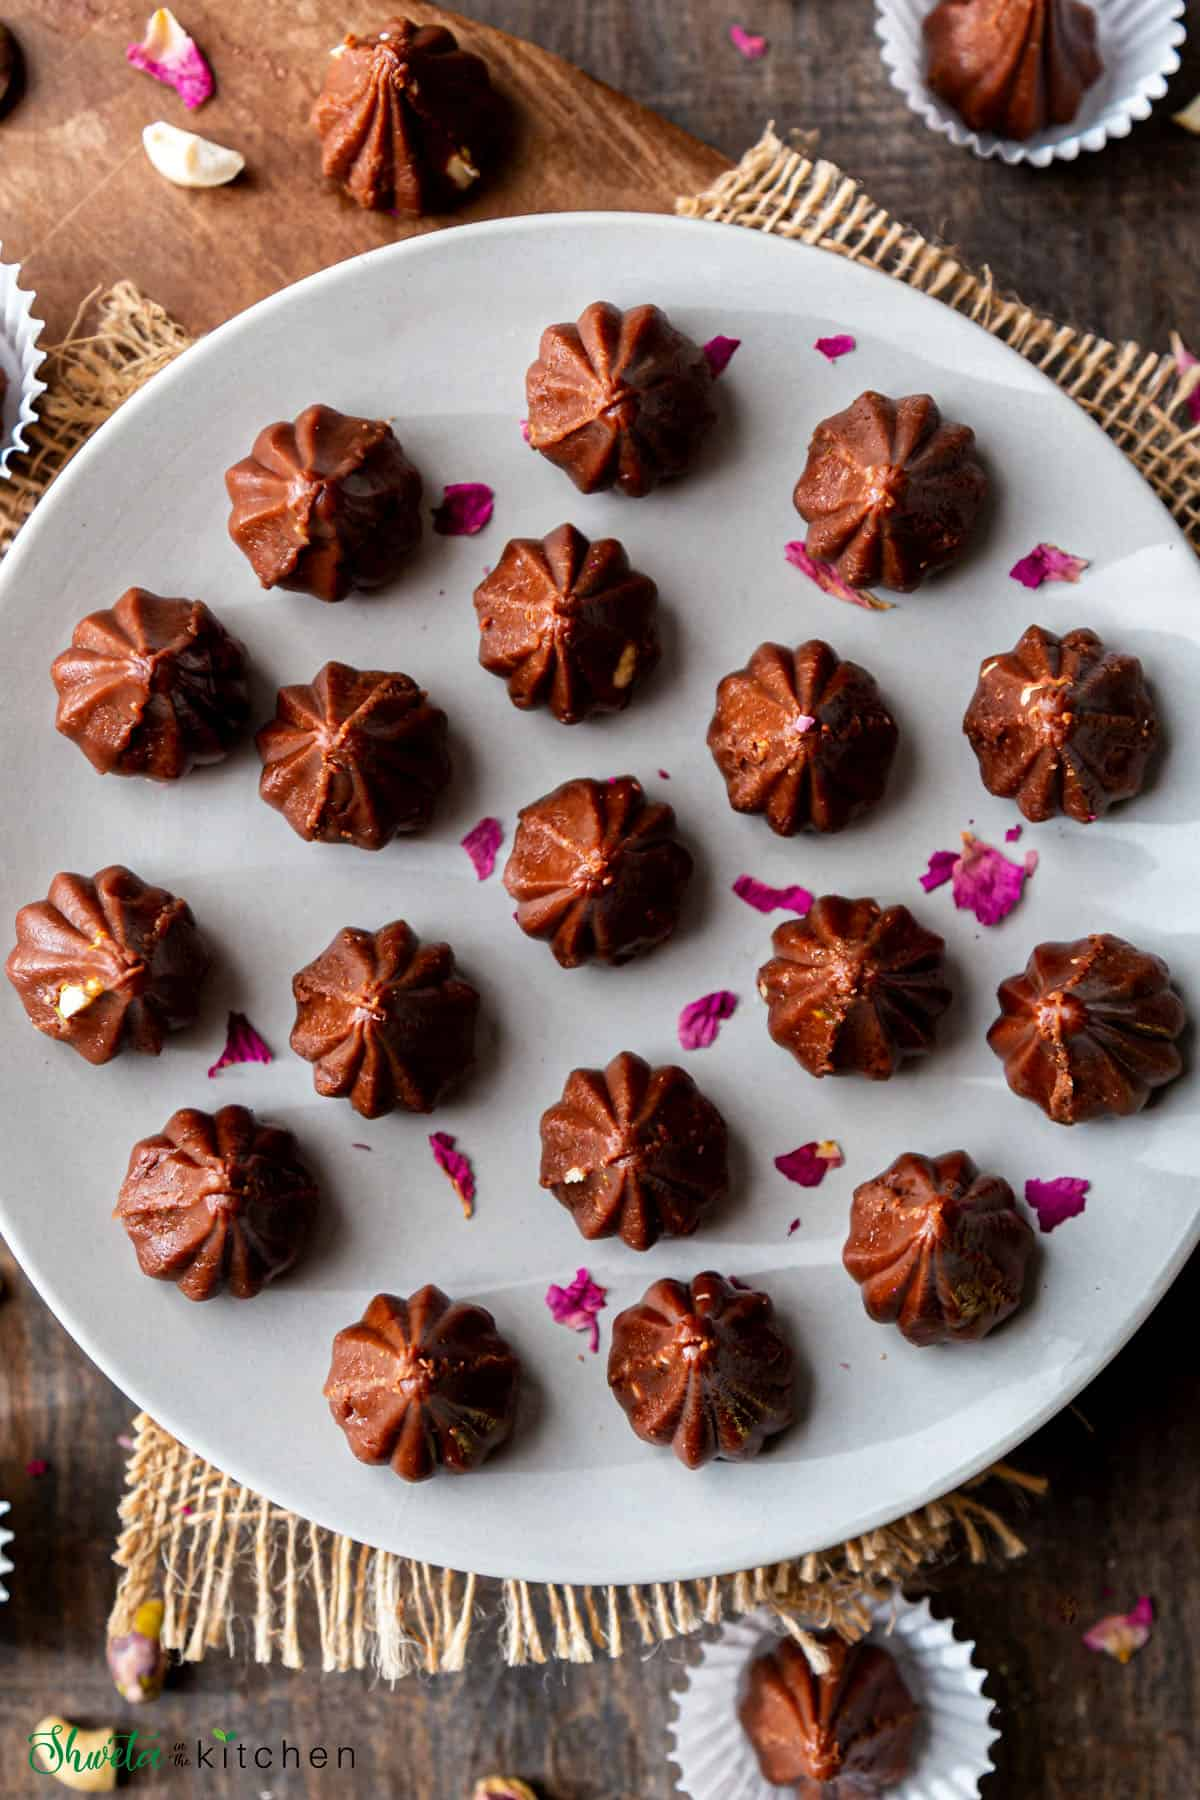 Top view of Chocolate modak arrnaged on a plate in circular pattern